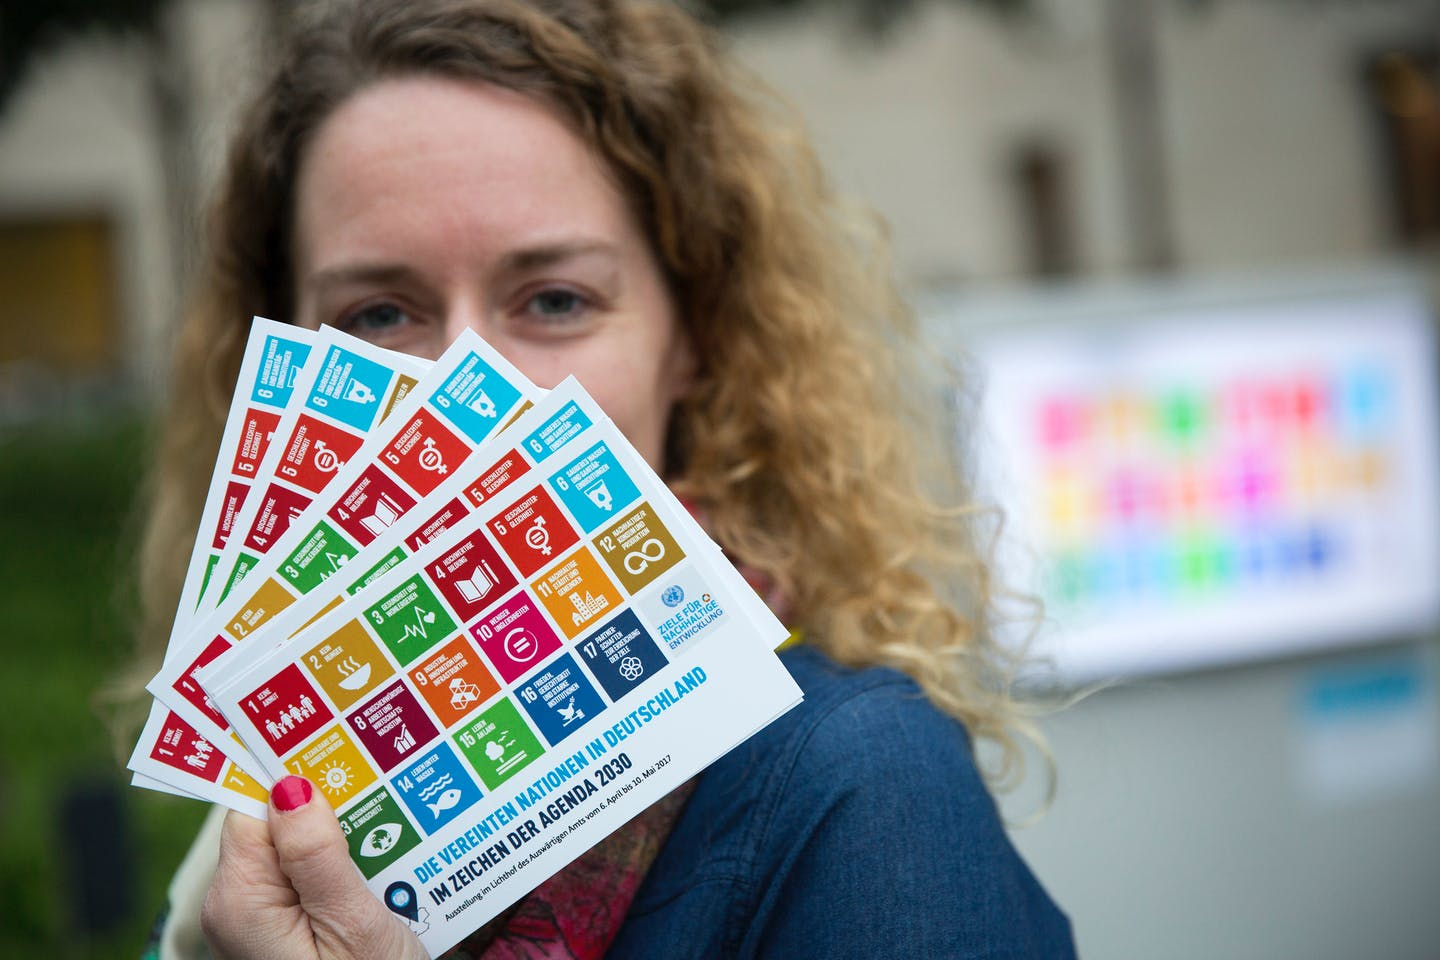 German lady and the Sustainable Development Goals (SDGs)